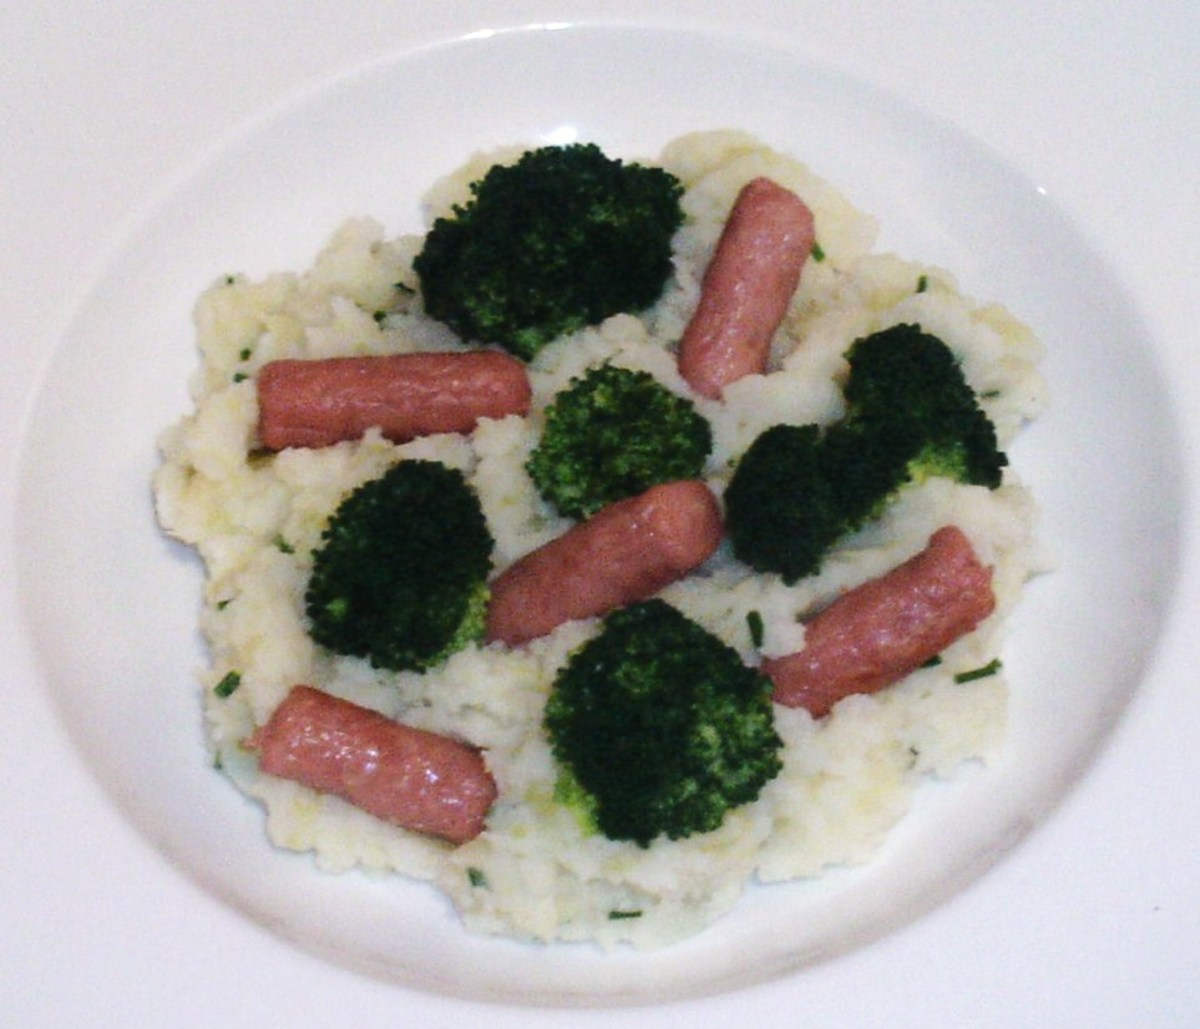 Simply cooked broccoli is served with mini sausages and mashed potato and broccoli stalk